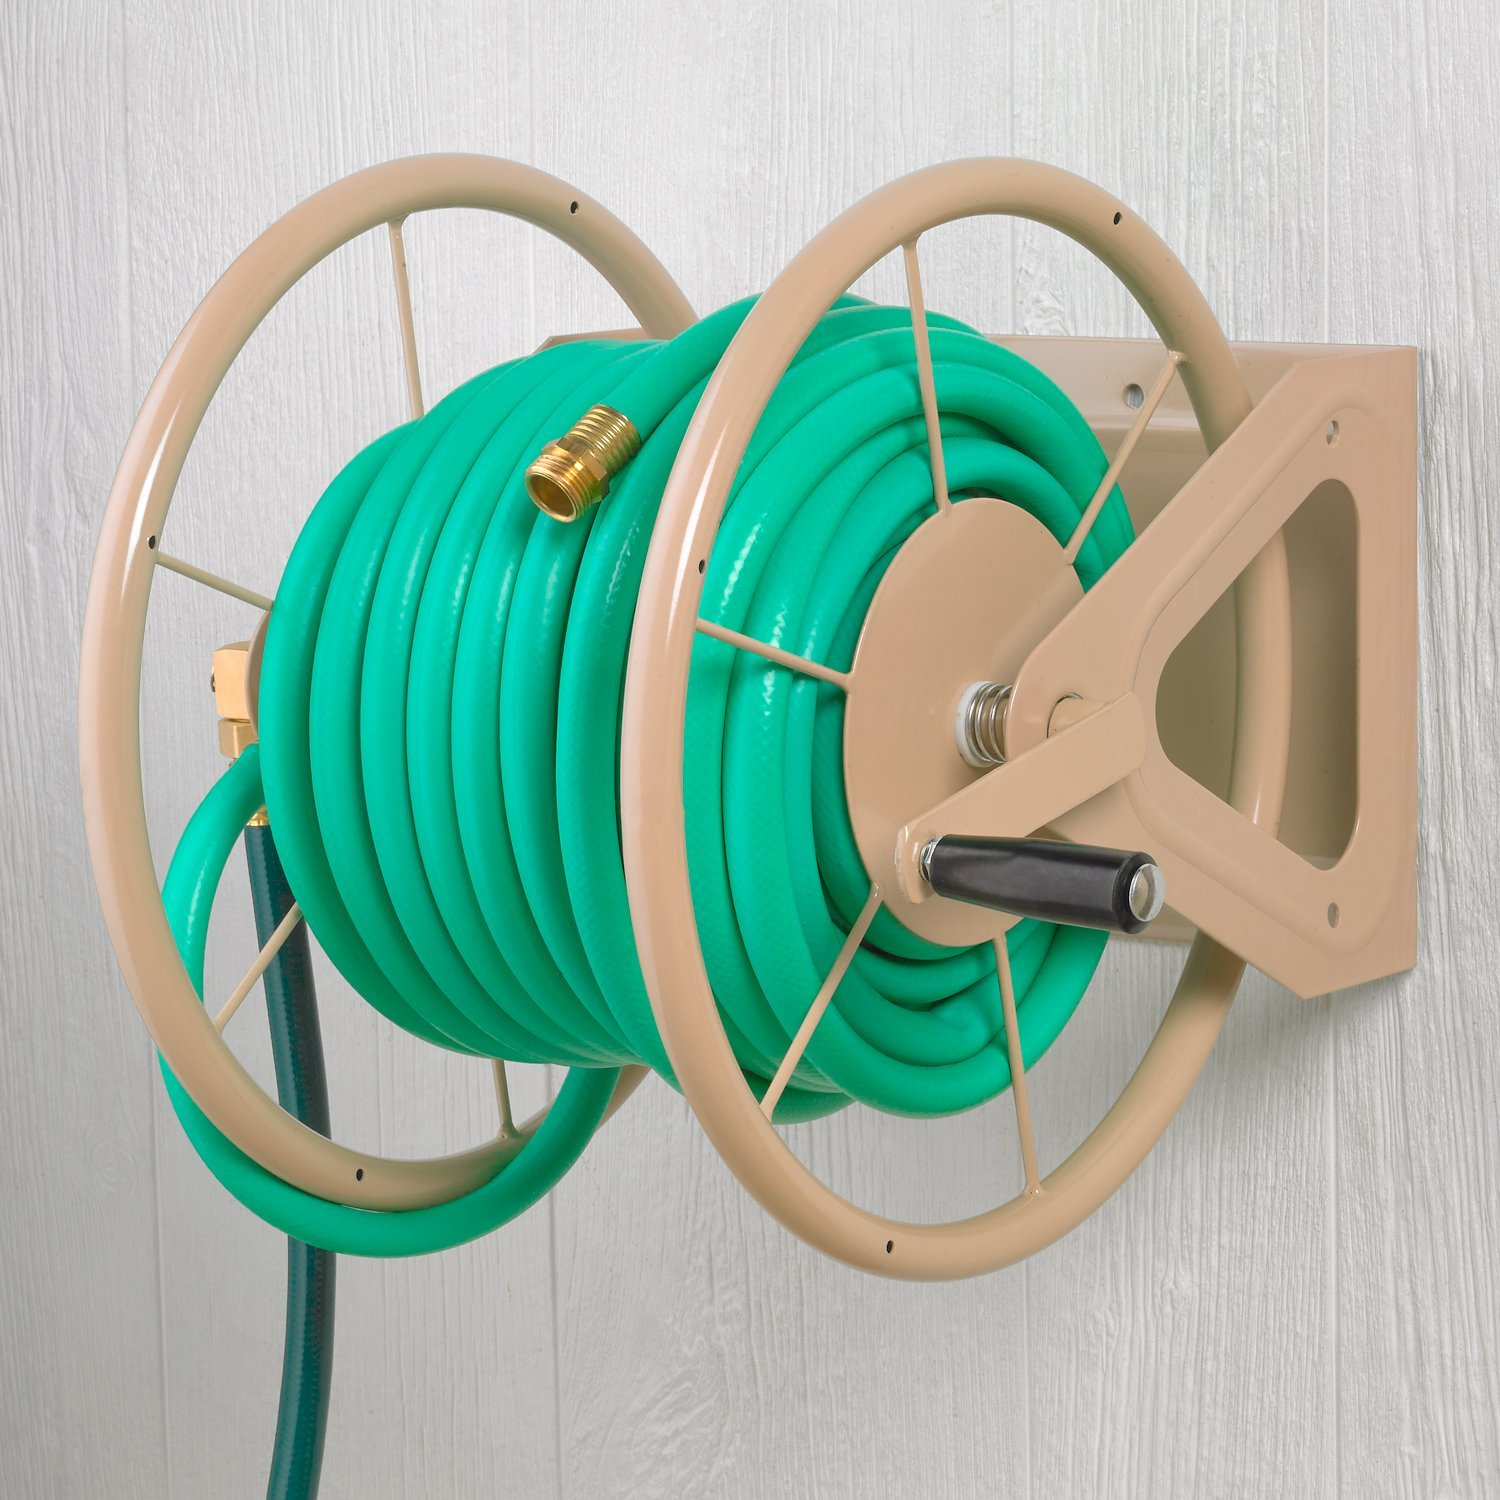 Liberty Garden Products 703 1 Multi Purpose Steel Wall And Floor Mount Garden Hose Reel Holds 200 Feet Of 5 8 Inch Hose Tan Amazon In Garden Outdoors